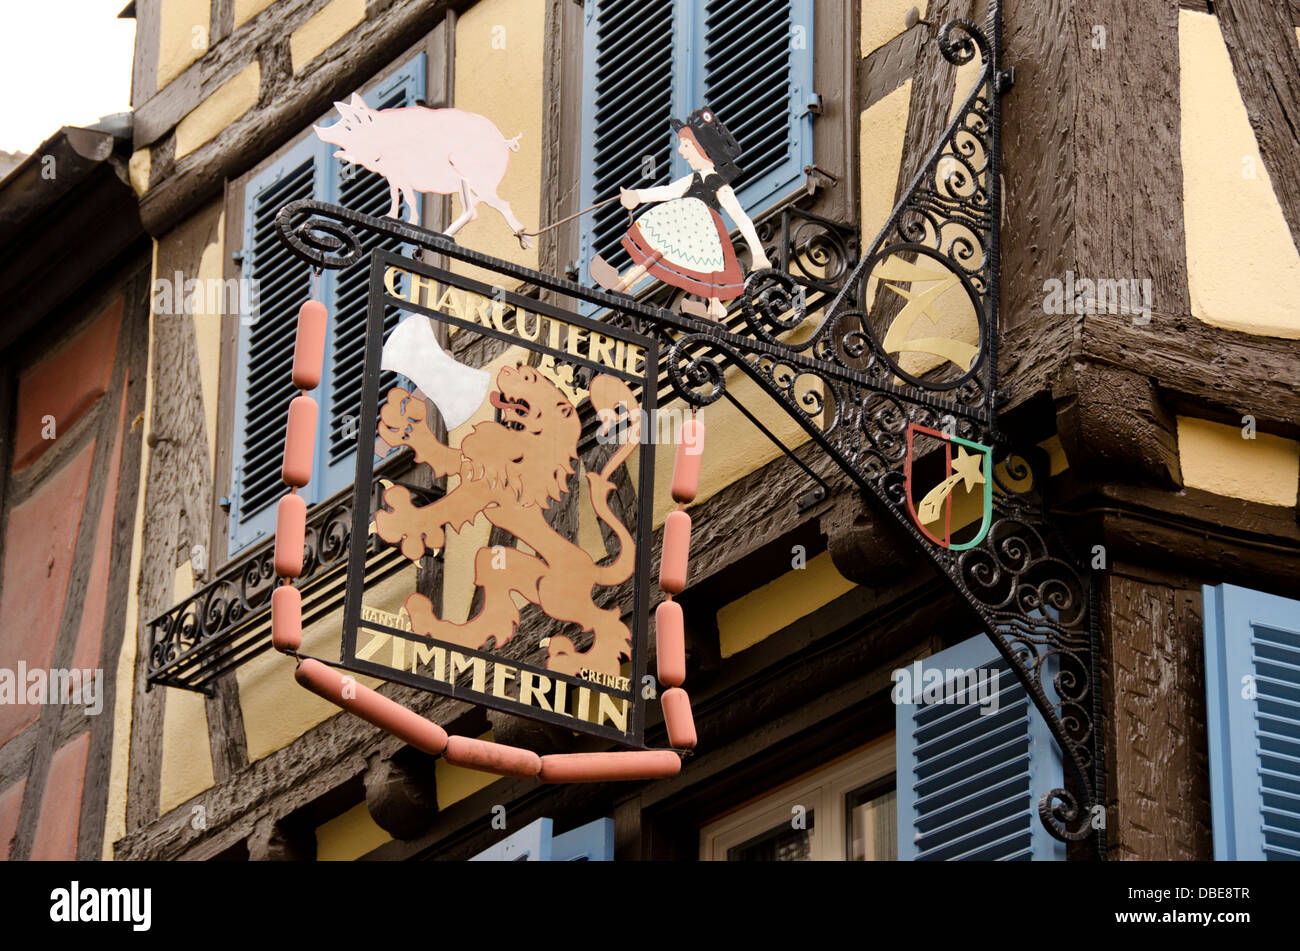 Iron Shop France Alsace Colmar Traditional Butcher Shop Wrought Iron